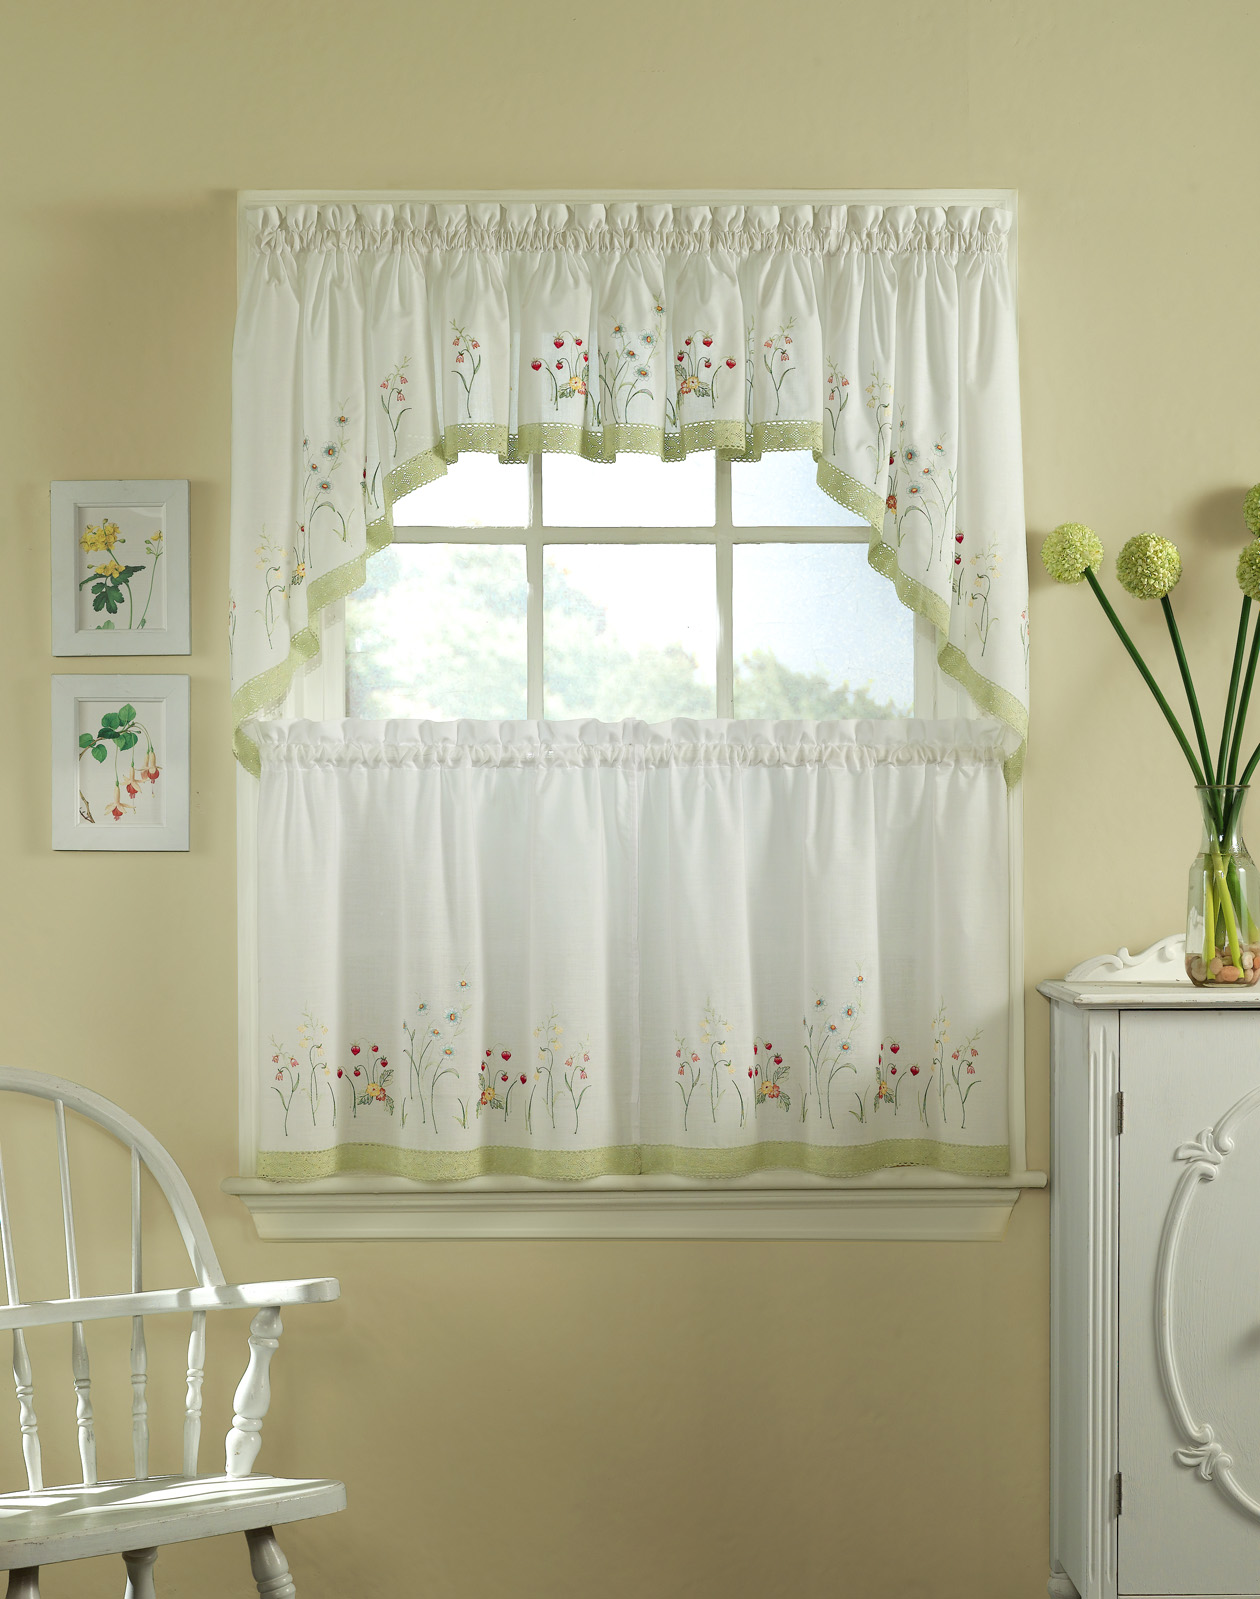 Exceptionnel Affordable Lovely Half Window Curtains With Window Valance And Green Floral  Accent Plus Vintage Chair And Wooden With Green Cafe Curtains